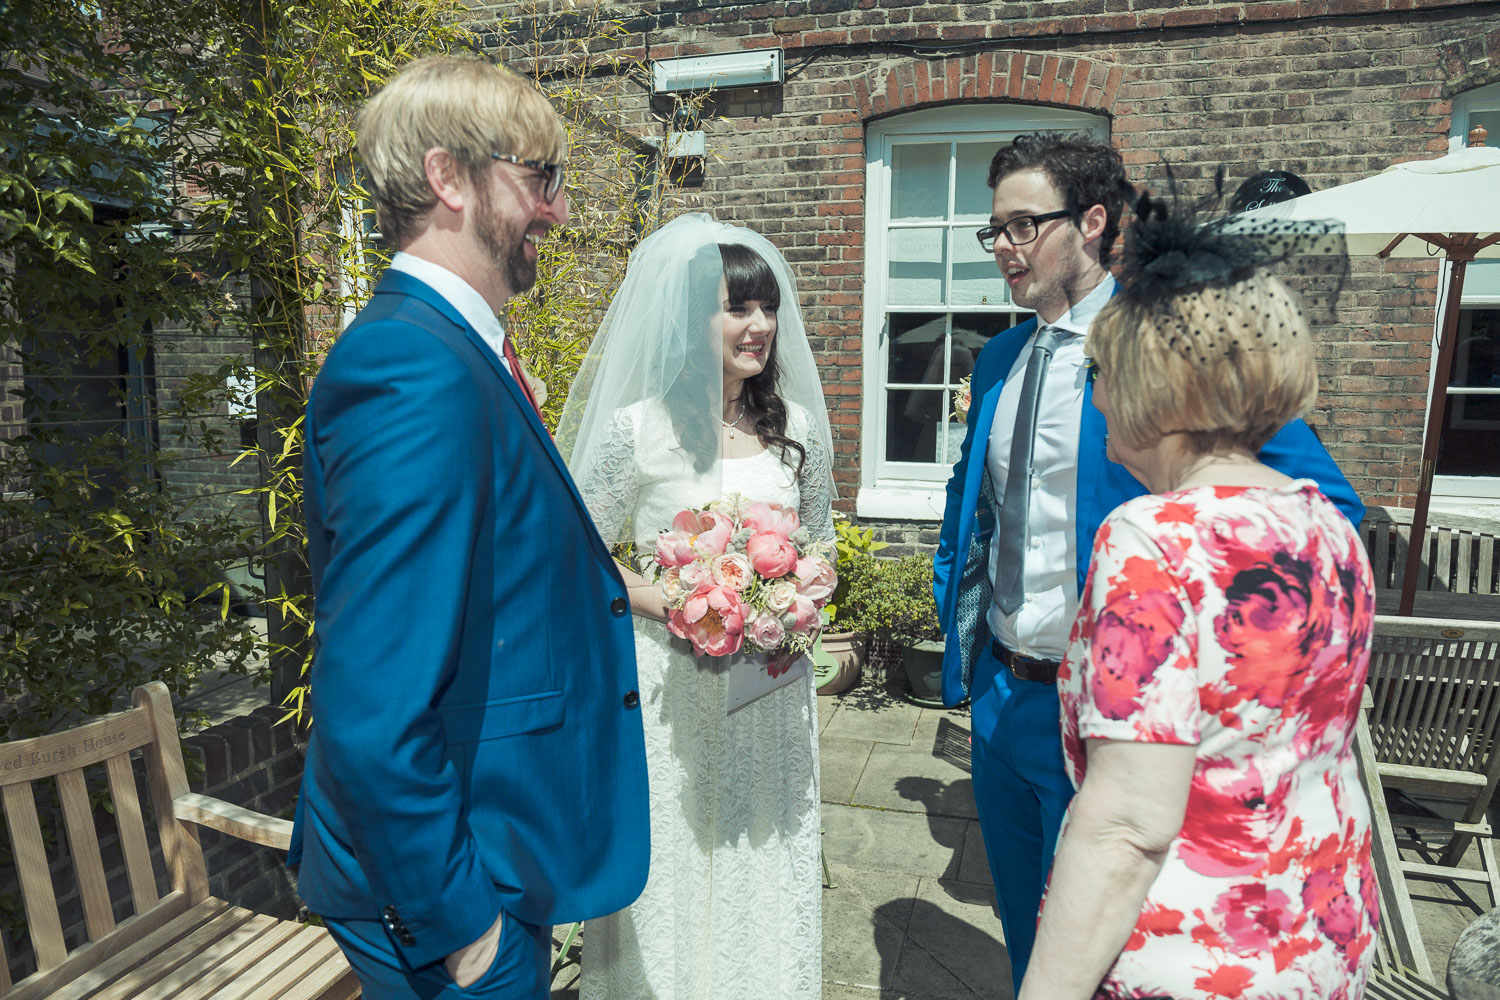 burgh-house-hampstead-north-london-wedding-0090.jpg